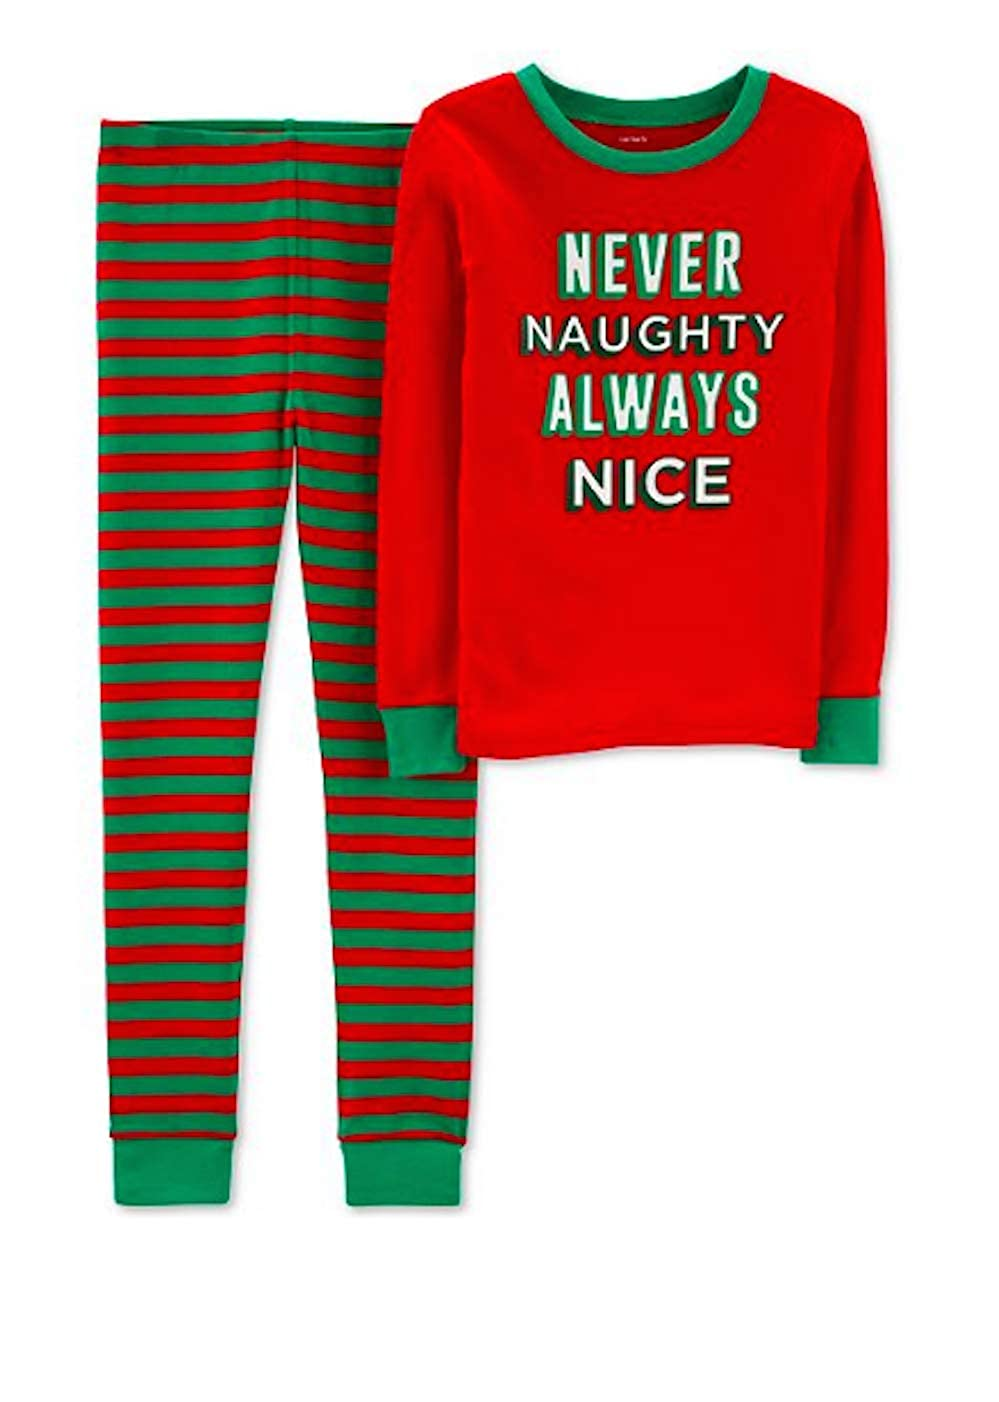 Carters 2-Piece Boys Christmas Snug Fit Cotton PJs Never Naughty Always Nice